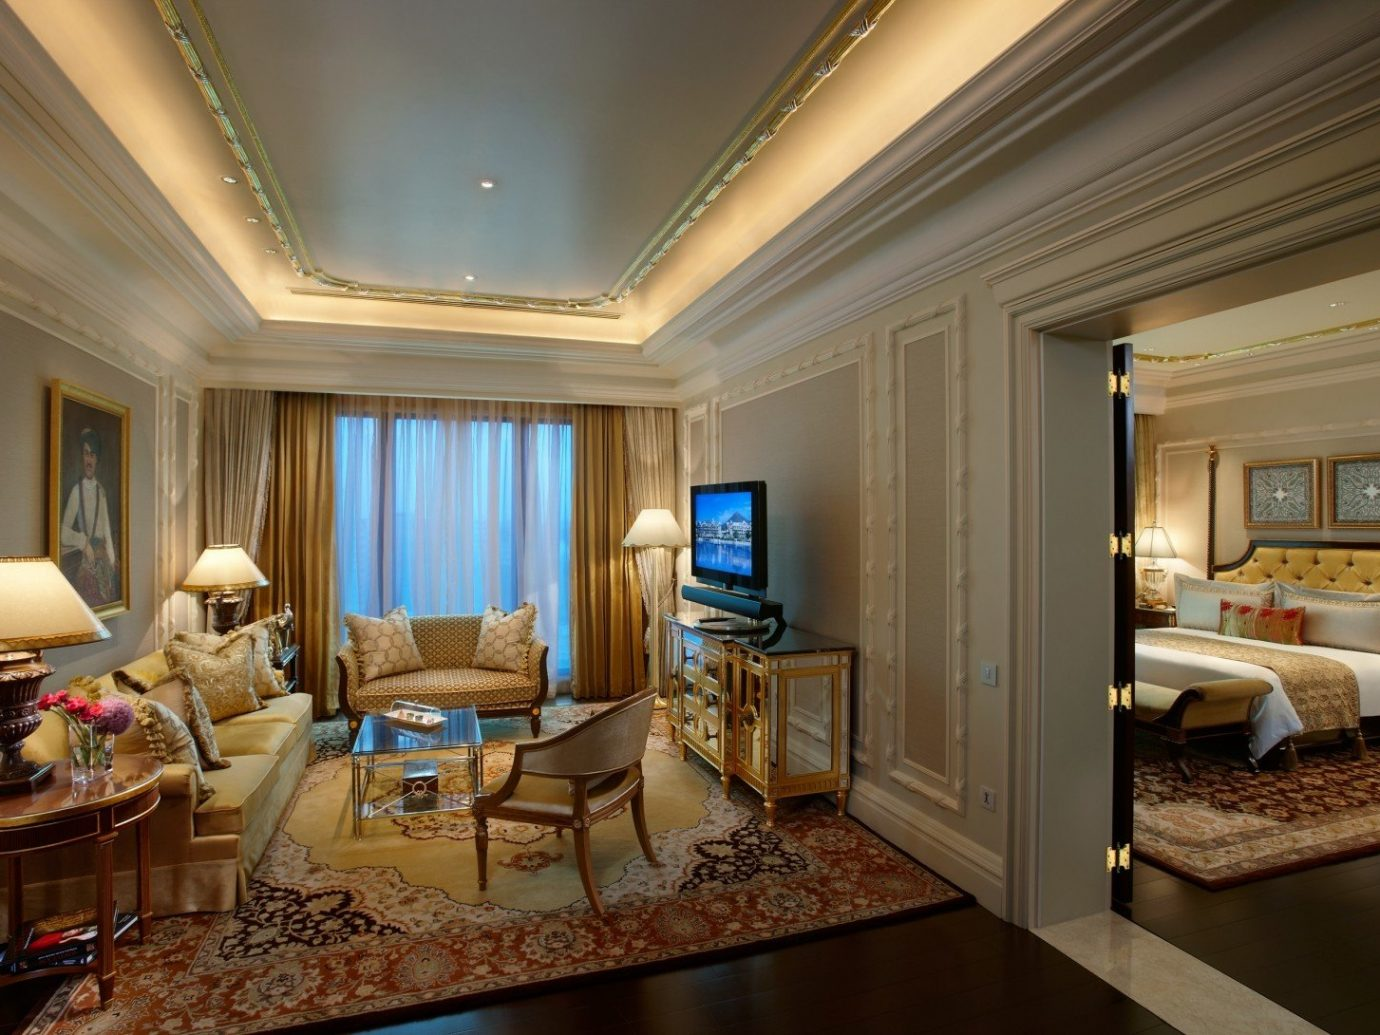 Hotels Luxury Travel indoor wall floor room ceiling Living living room interior design Suite home estate real estate window furniture interior designer area Bedroom